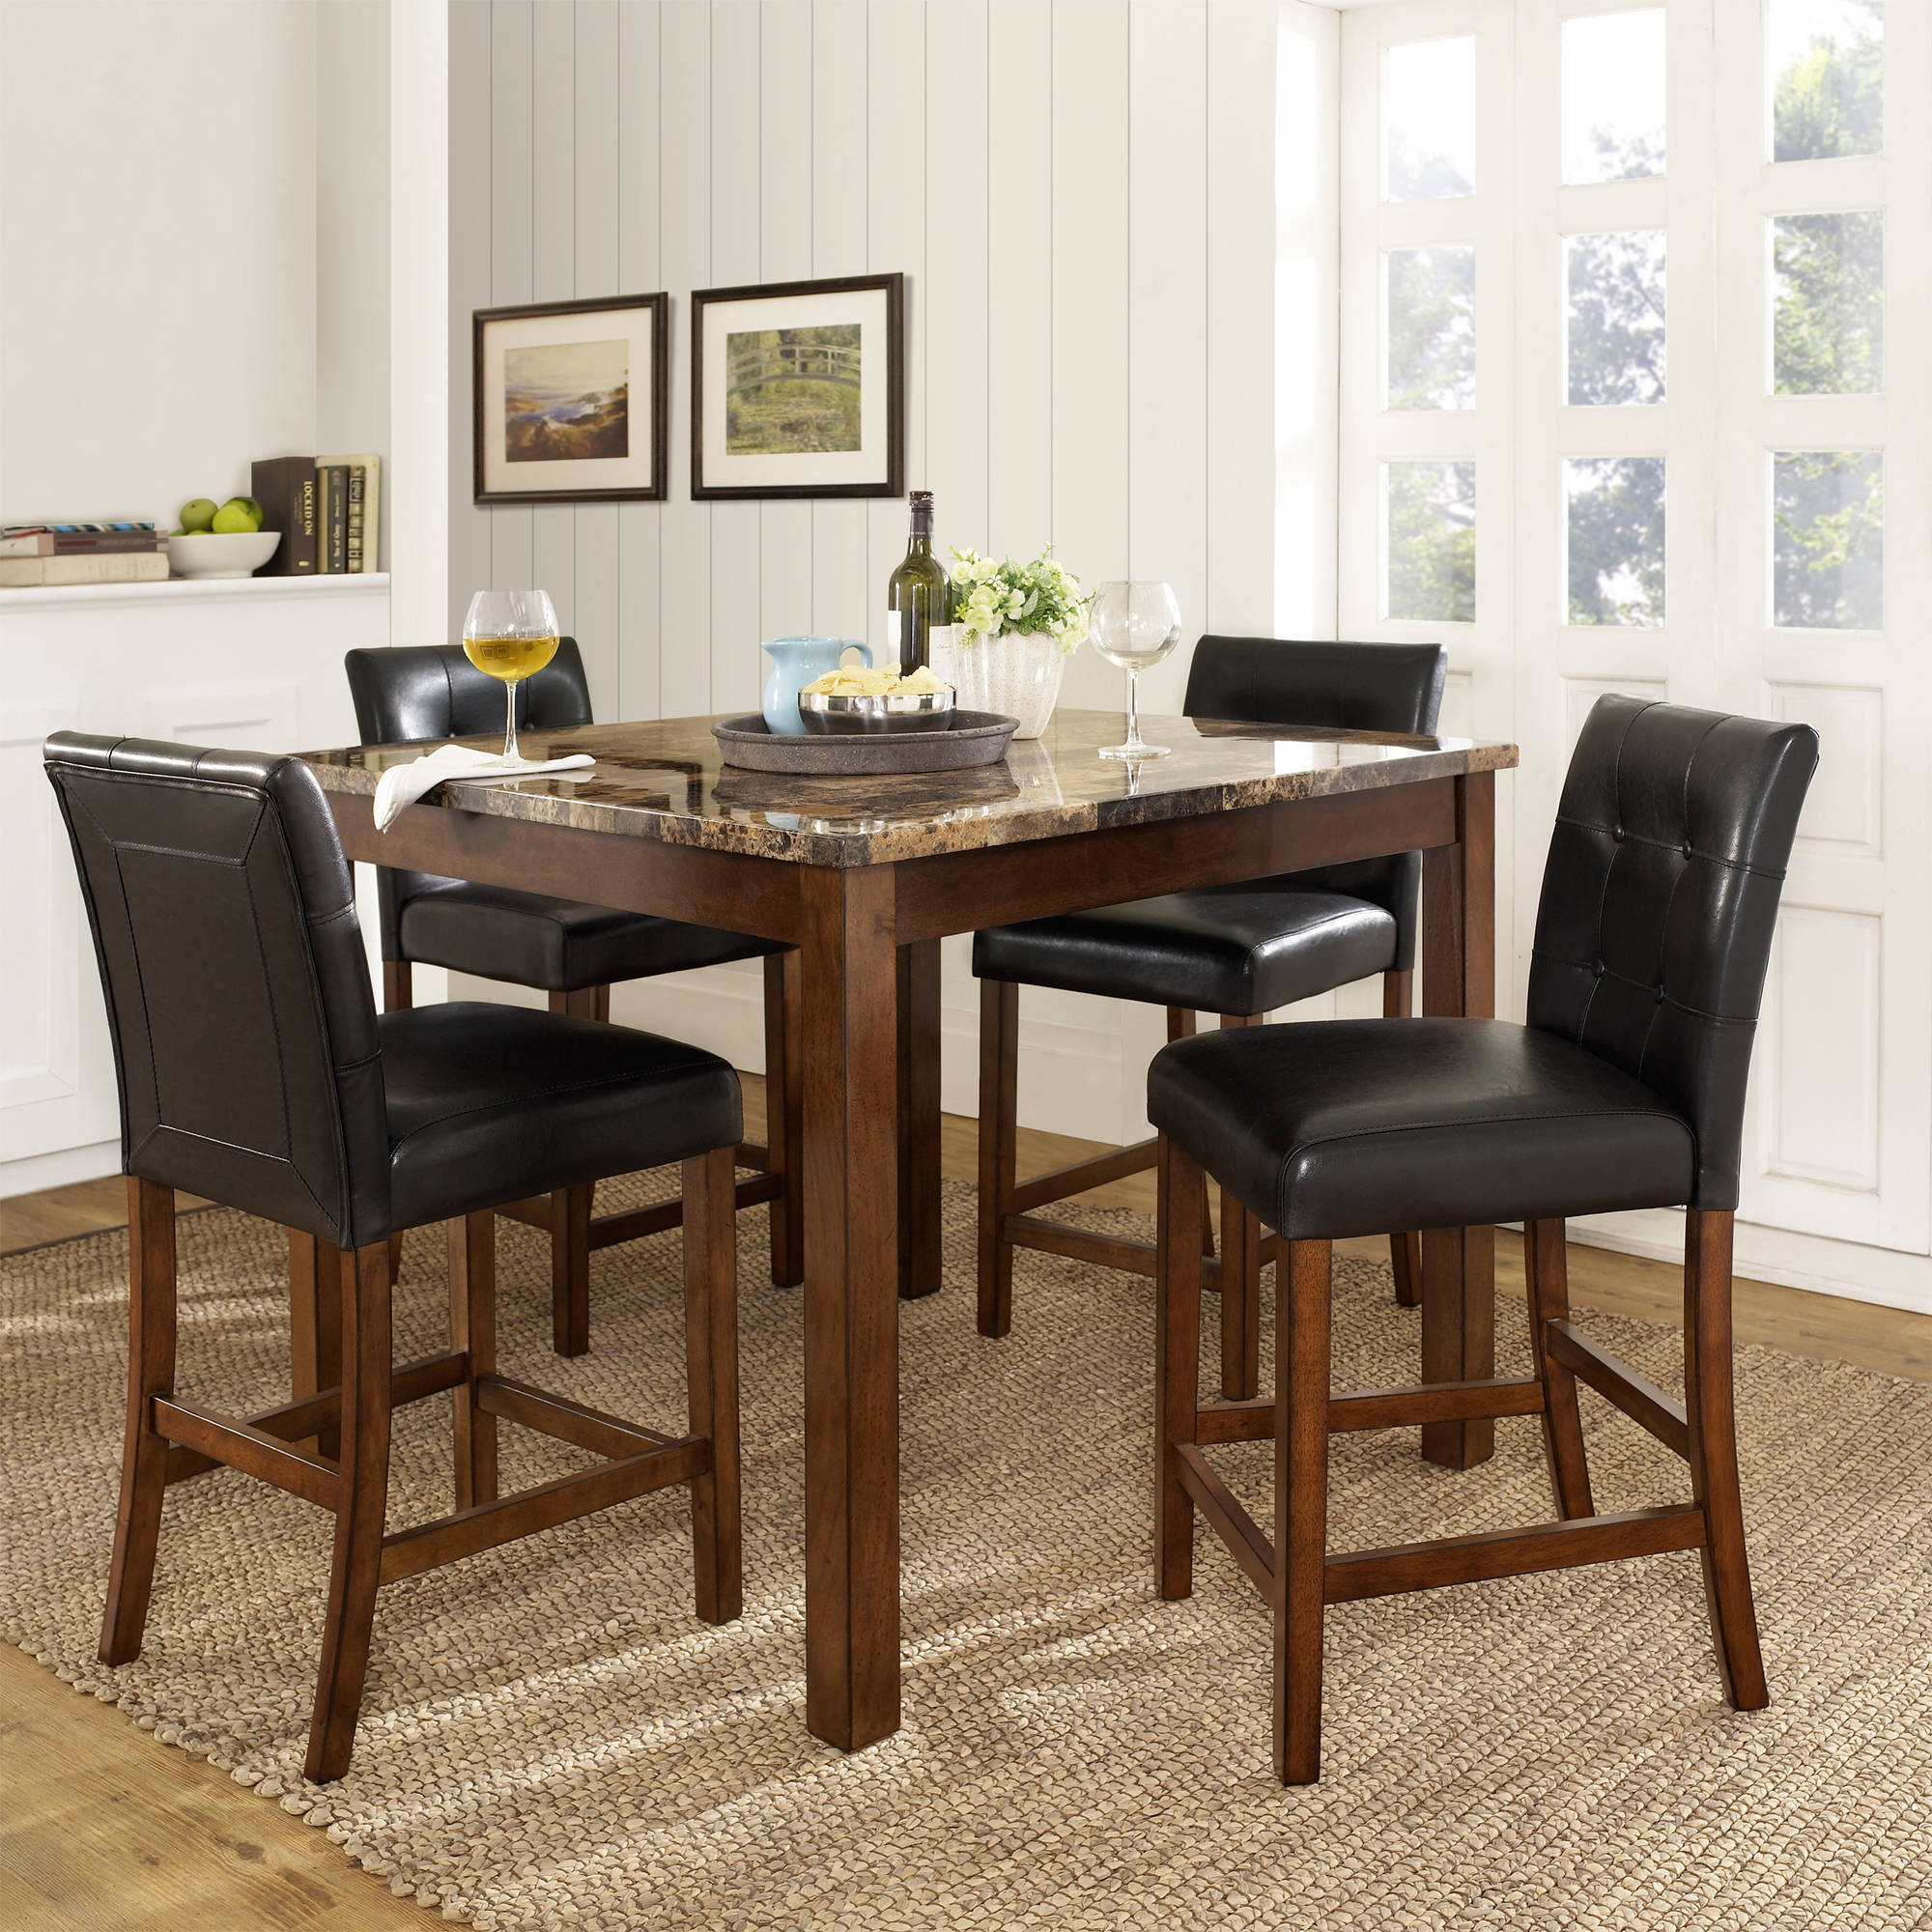 Dining Room Table Pictures Delectable Kitchen & Dining Furniture  Walmart Design Decoration